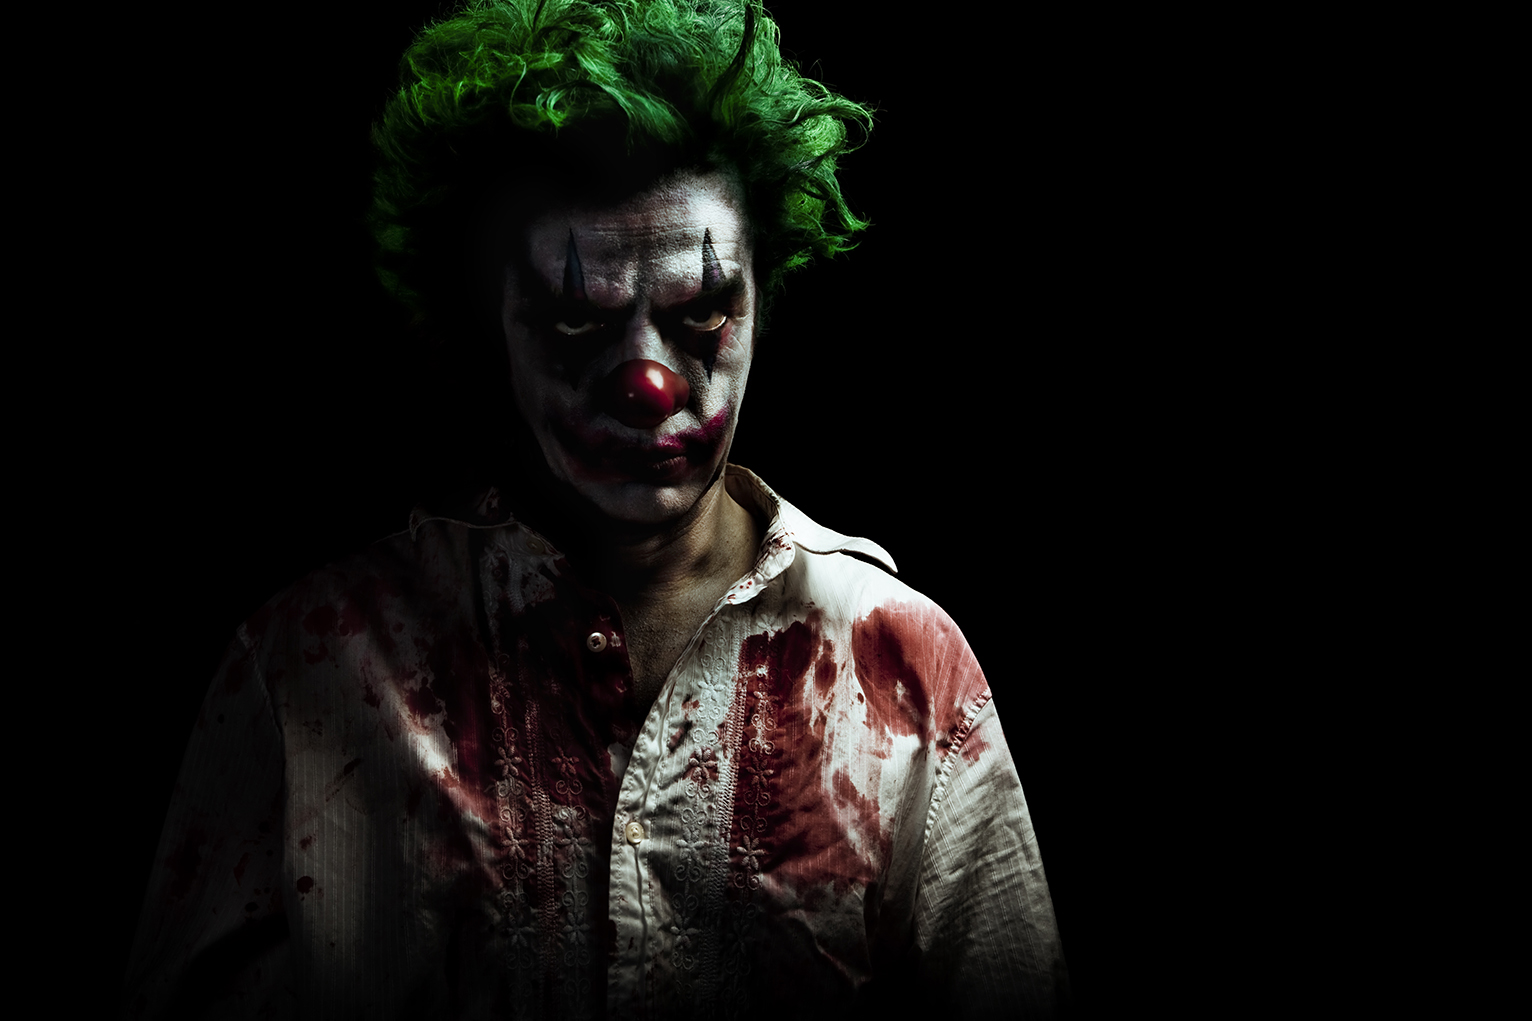 Clowns Are Scaring People Near The Woods Out In The Open